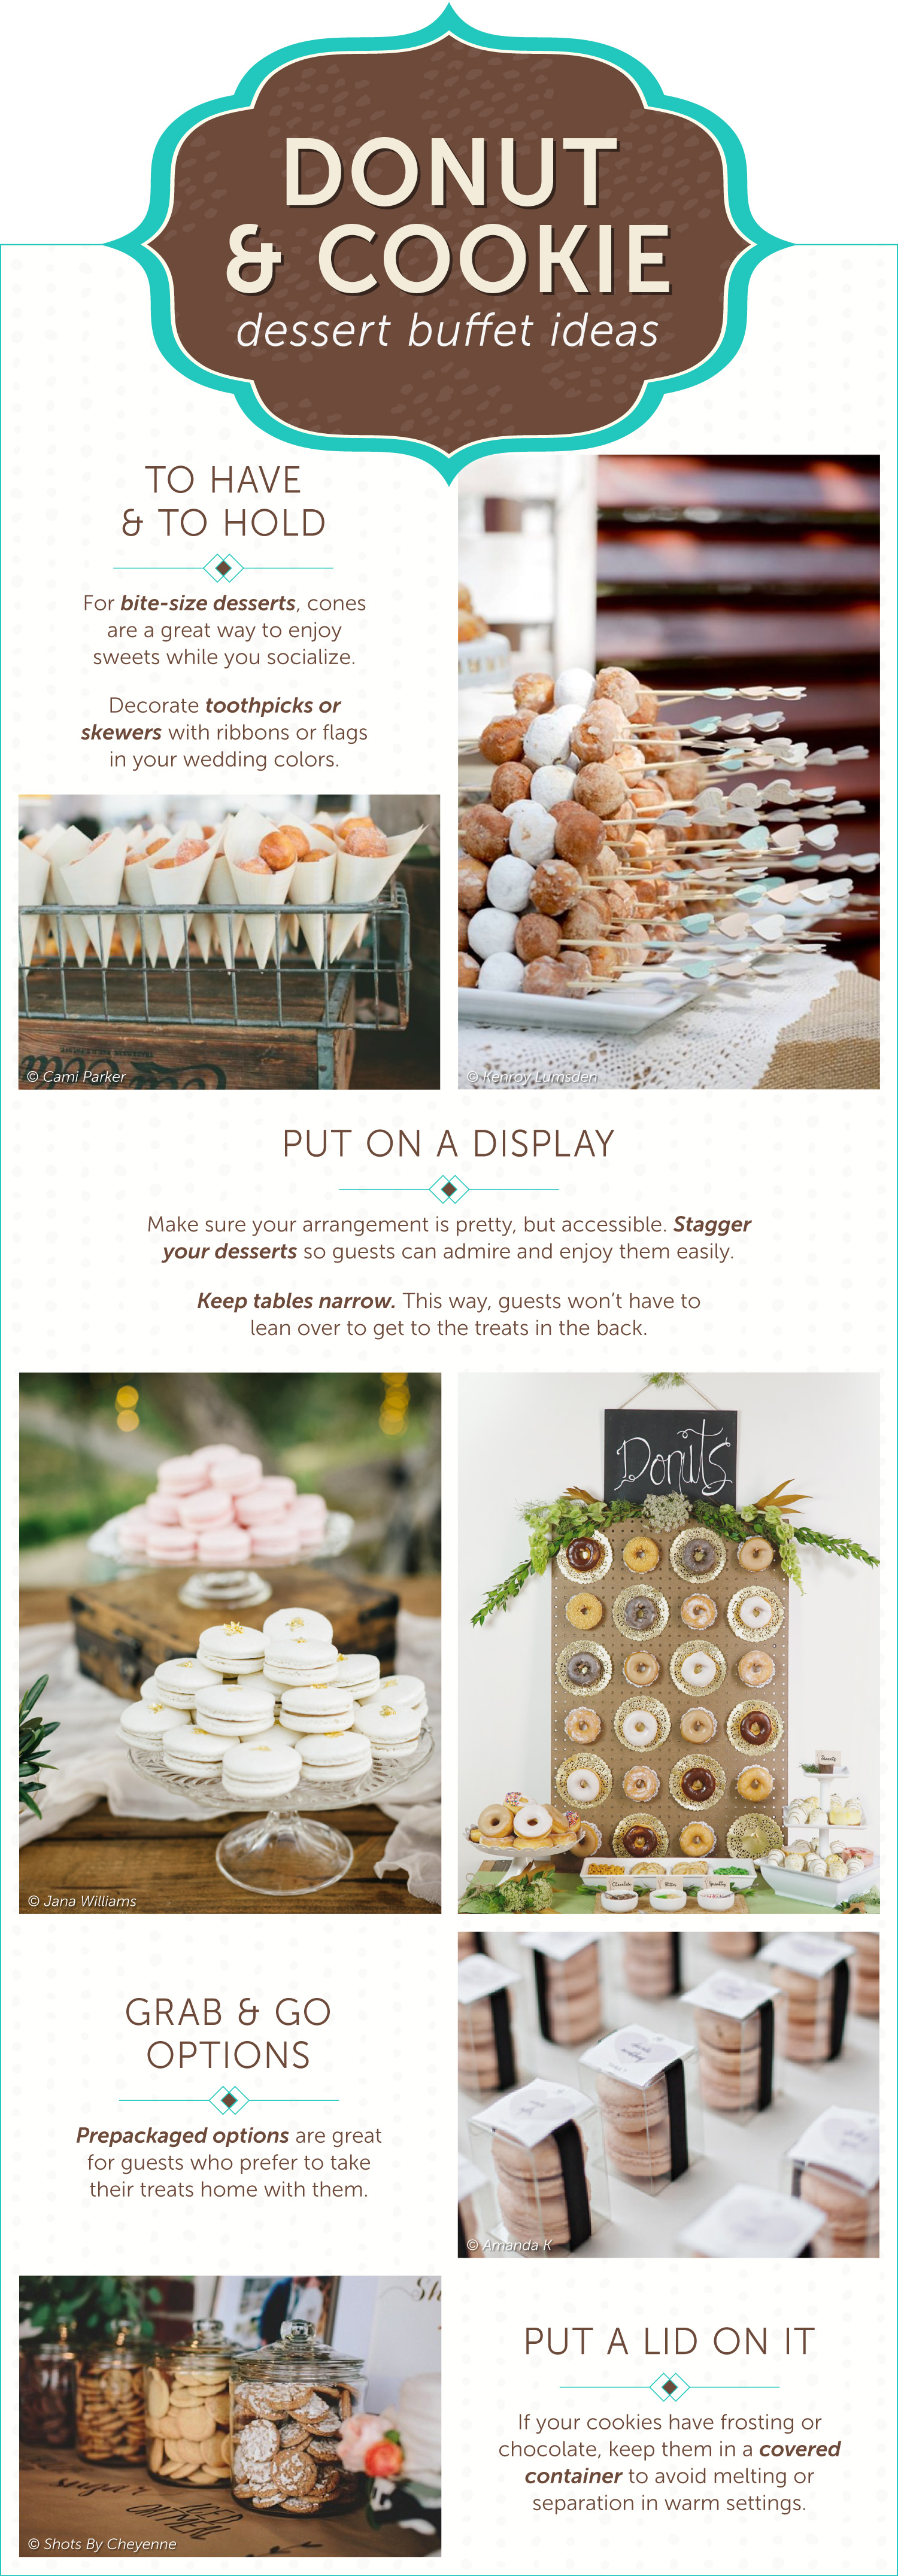 Wedding Buffets Ideas.25 Dessert Buffet Ideas For Your Wedding Shari S Berries Blog